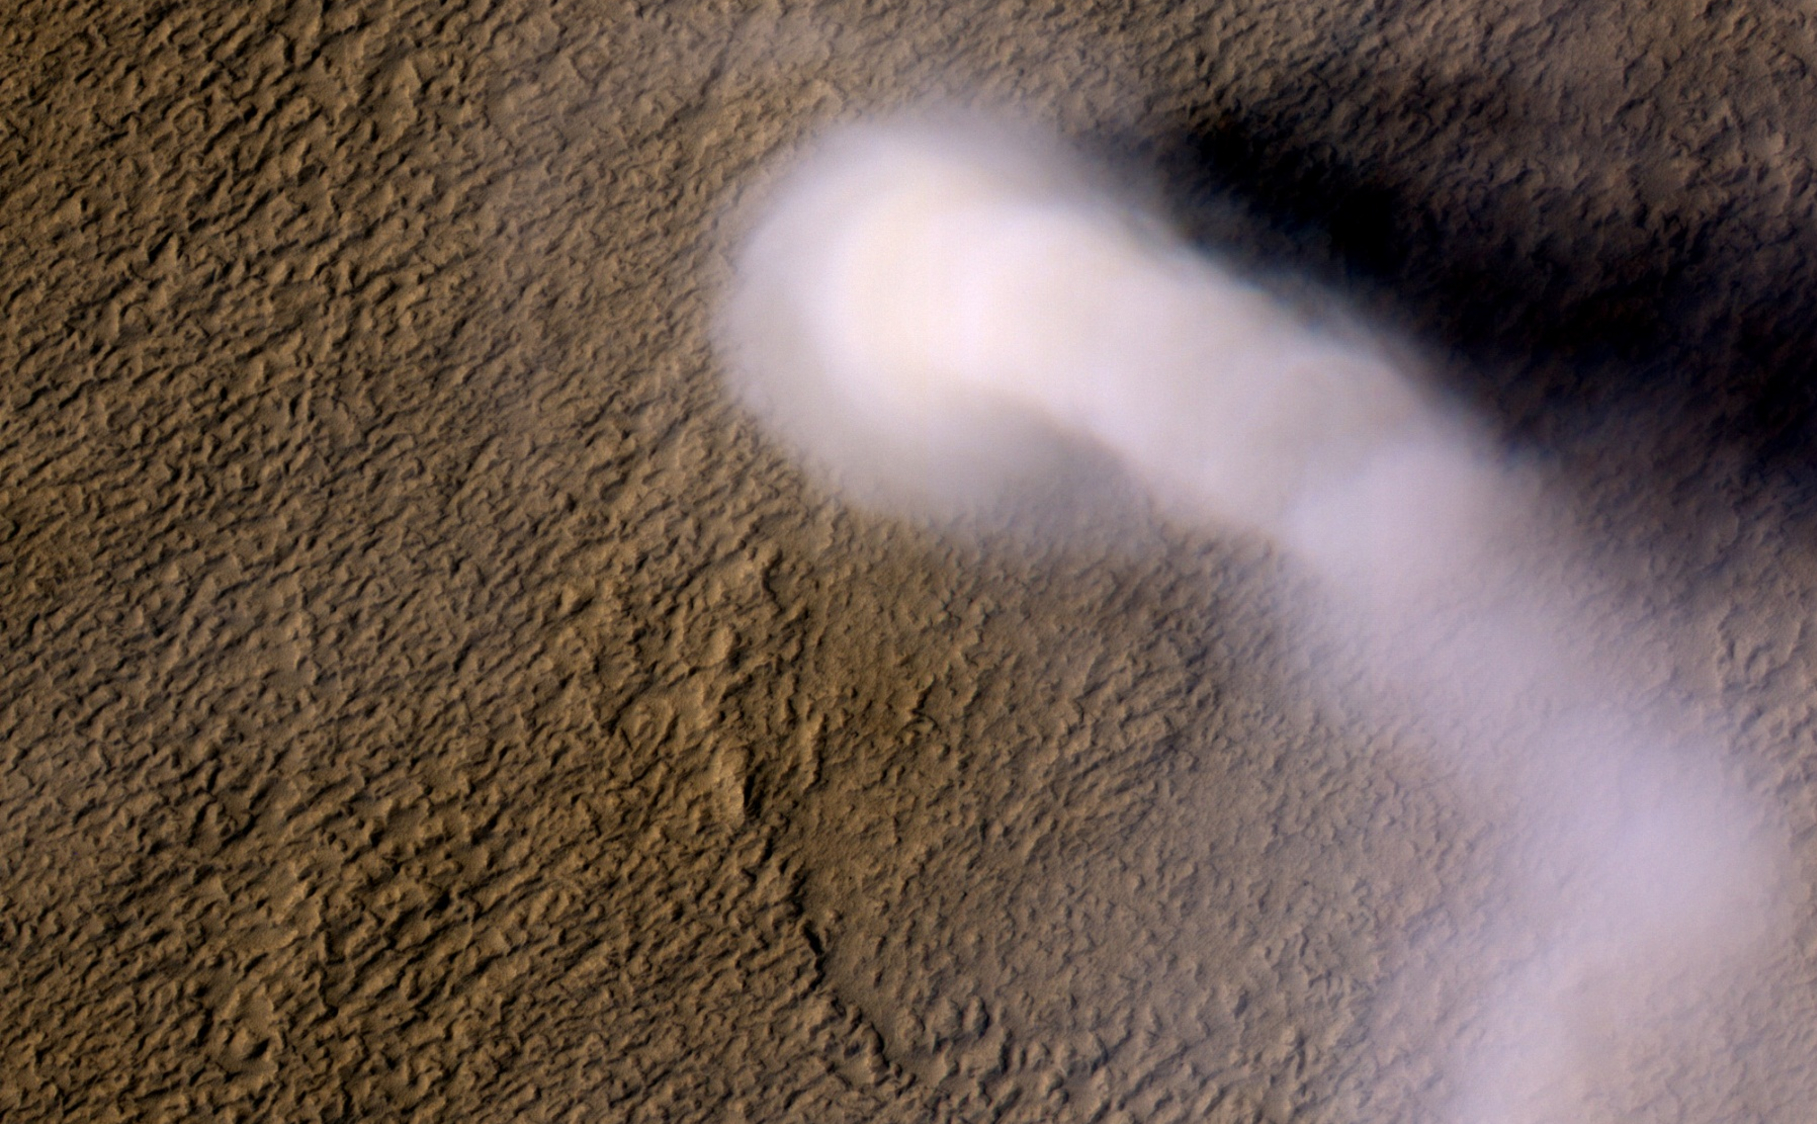 A Martian dust devil roughly 12 miles (20 kilometers) high was captured winding its way along the Amazonis Planitia region of Northern Mars on March 14, 2012 by the High Resolution Imaging Science Experiment (HiRISE) camera on NASA's Mars Reconnaissance Orbiter.